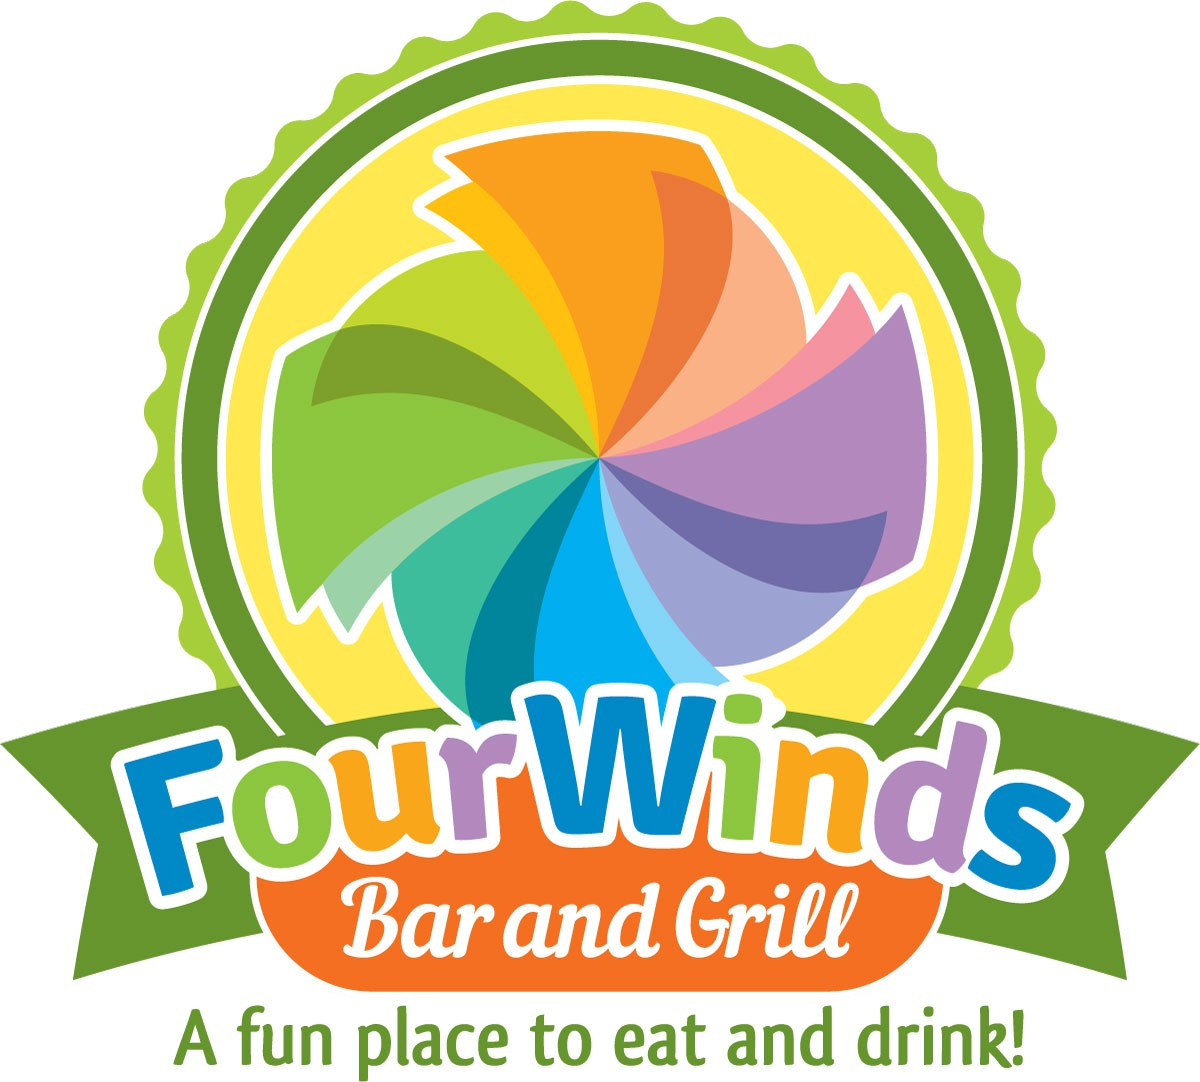 Create a funky and colorful logo for Four Winds Bar and Grill